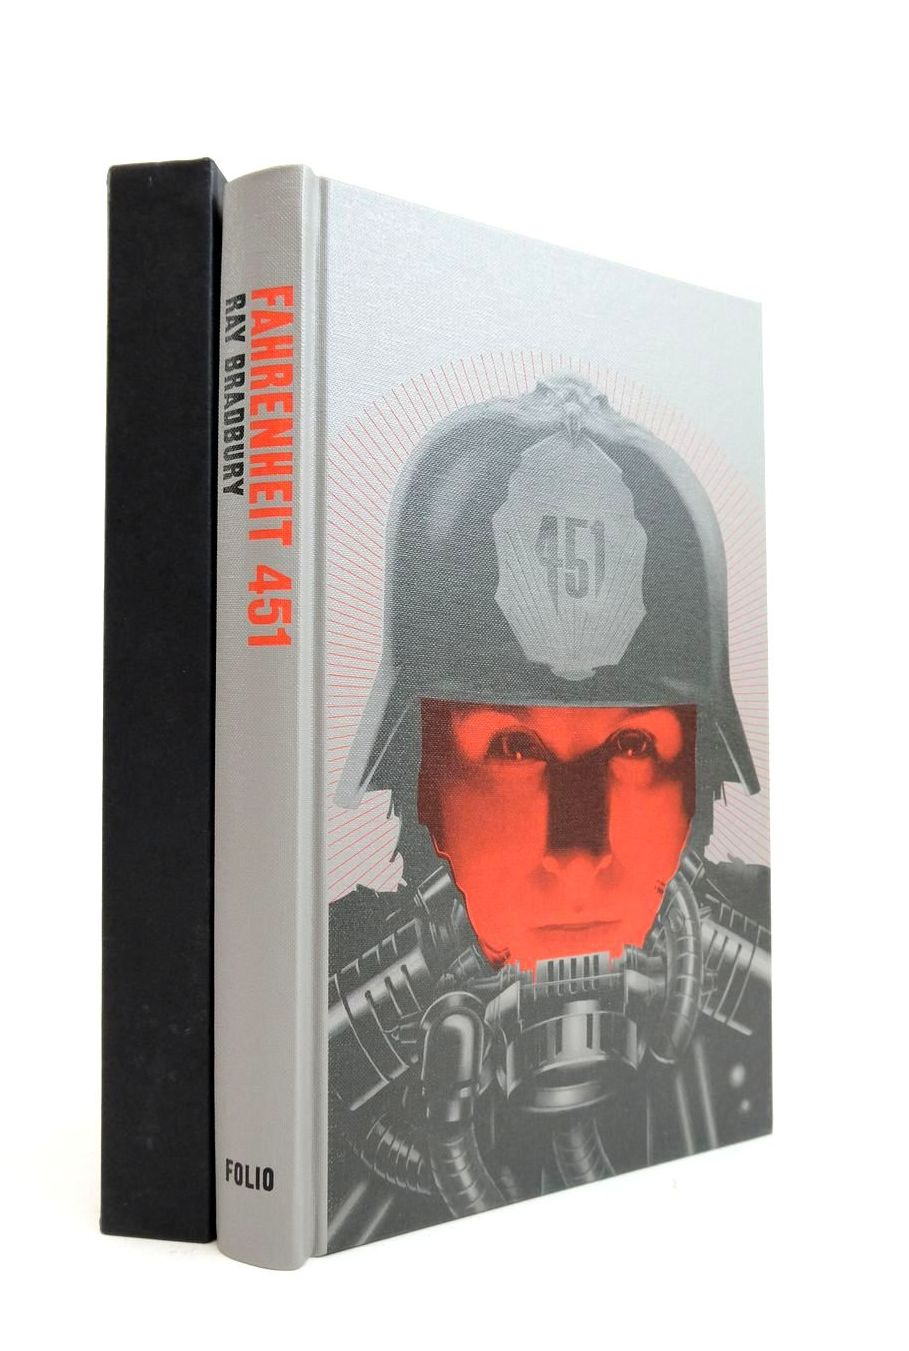 Photo of FAHRENHEIT 451 written by Bradbury, Ray Moorcock, Michael illustrated by Weber, Sam published by Folio Society (STOCK CODE: 1821573)  for sale by Stella & Rose's Books